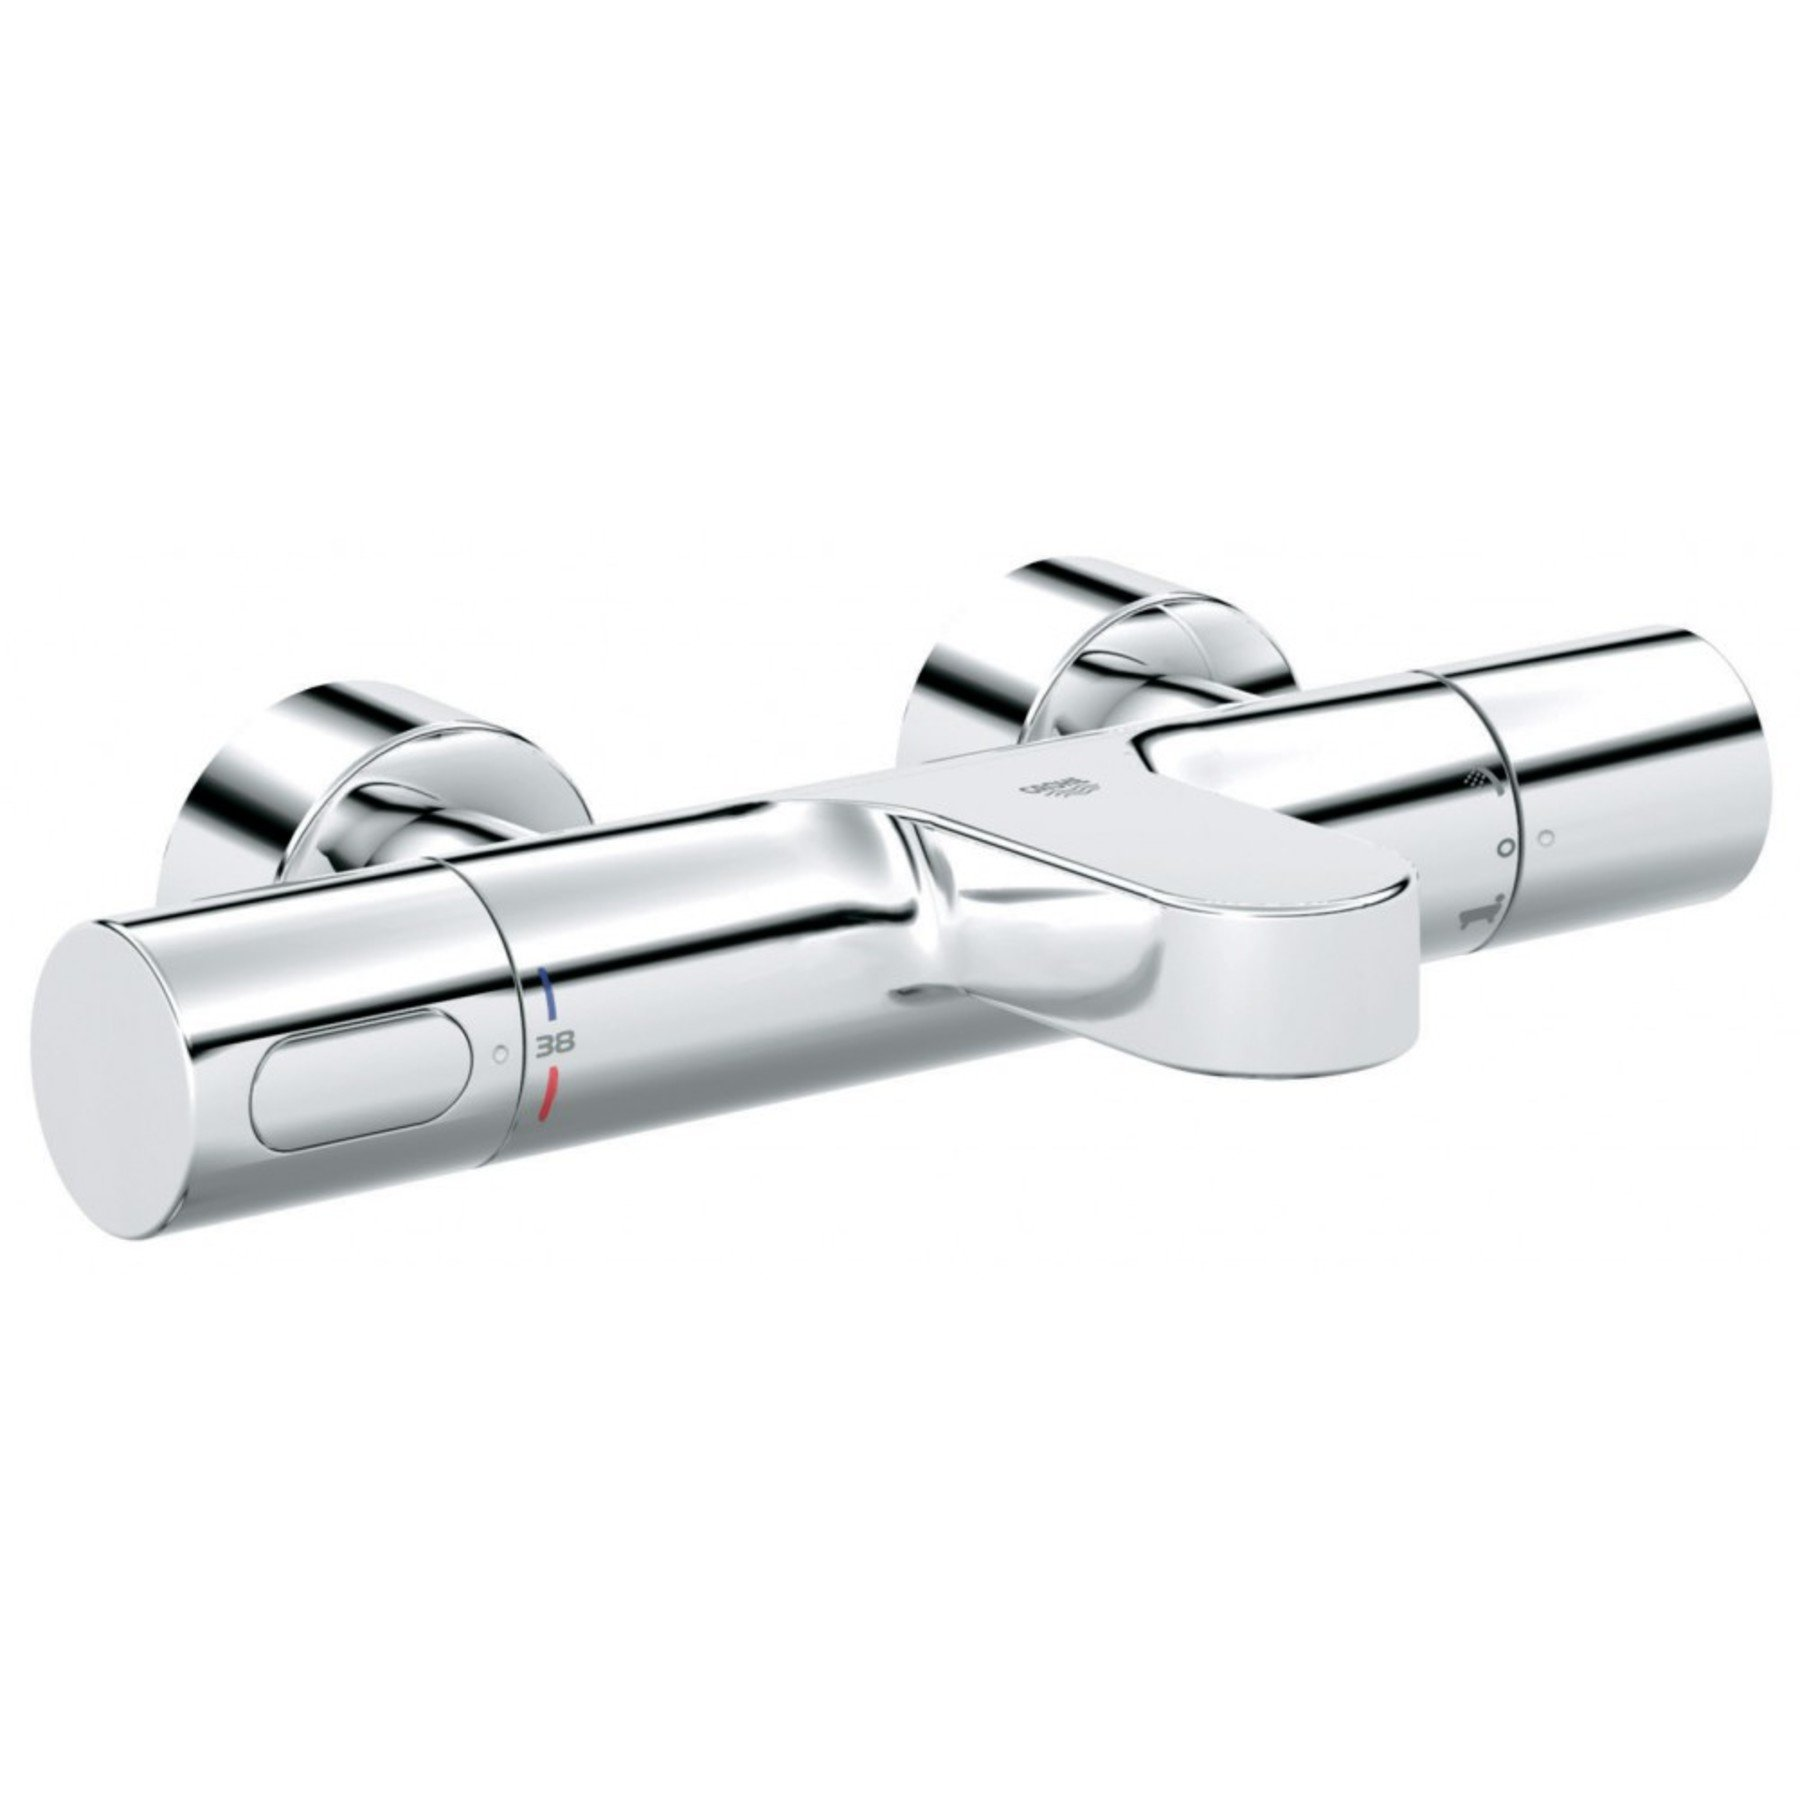 Grohe Grohtherm 3000 Cosmopolitan badthermostaat met omstel chroom